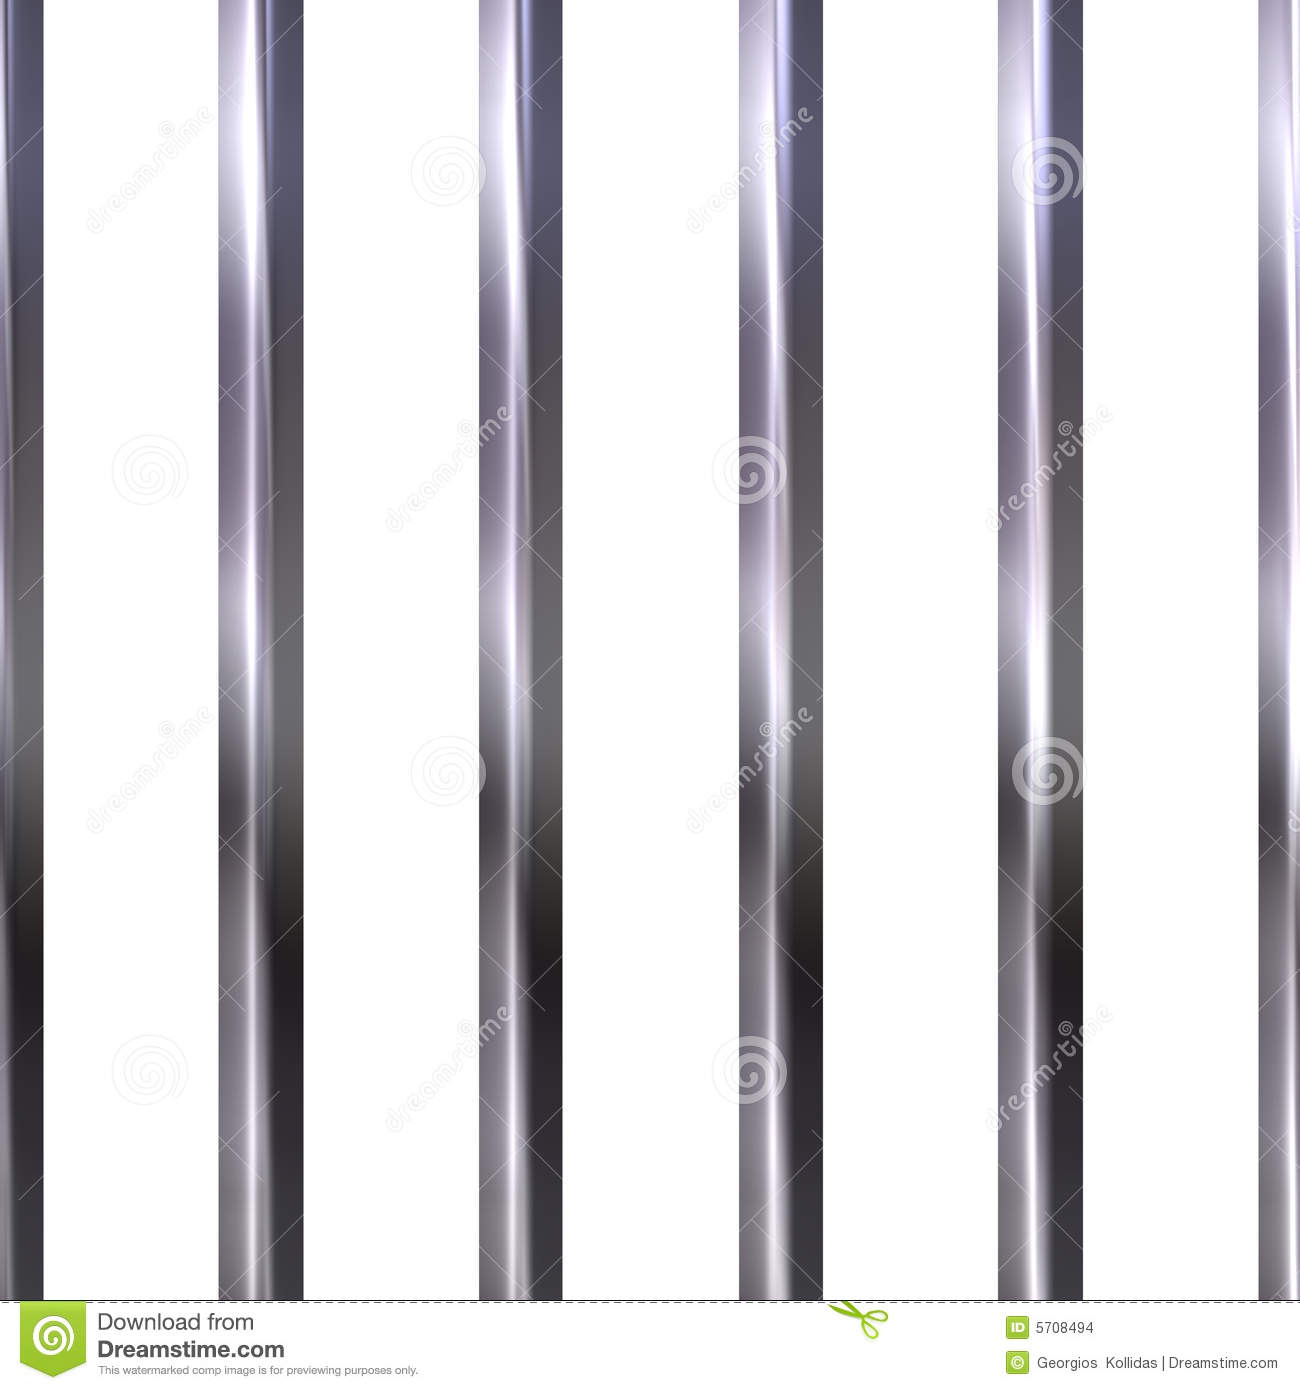 Bars clipart #6, Download drawings